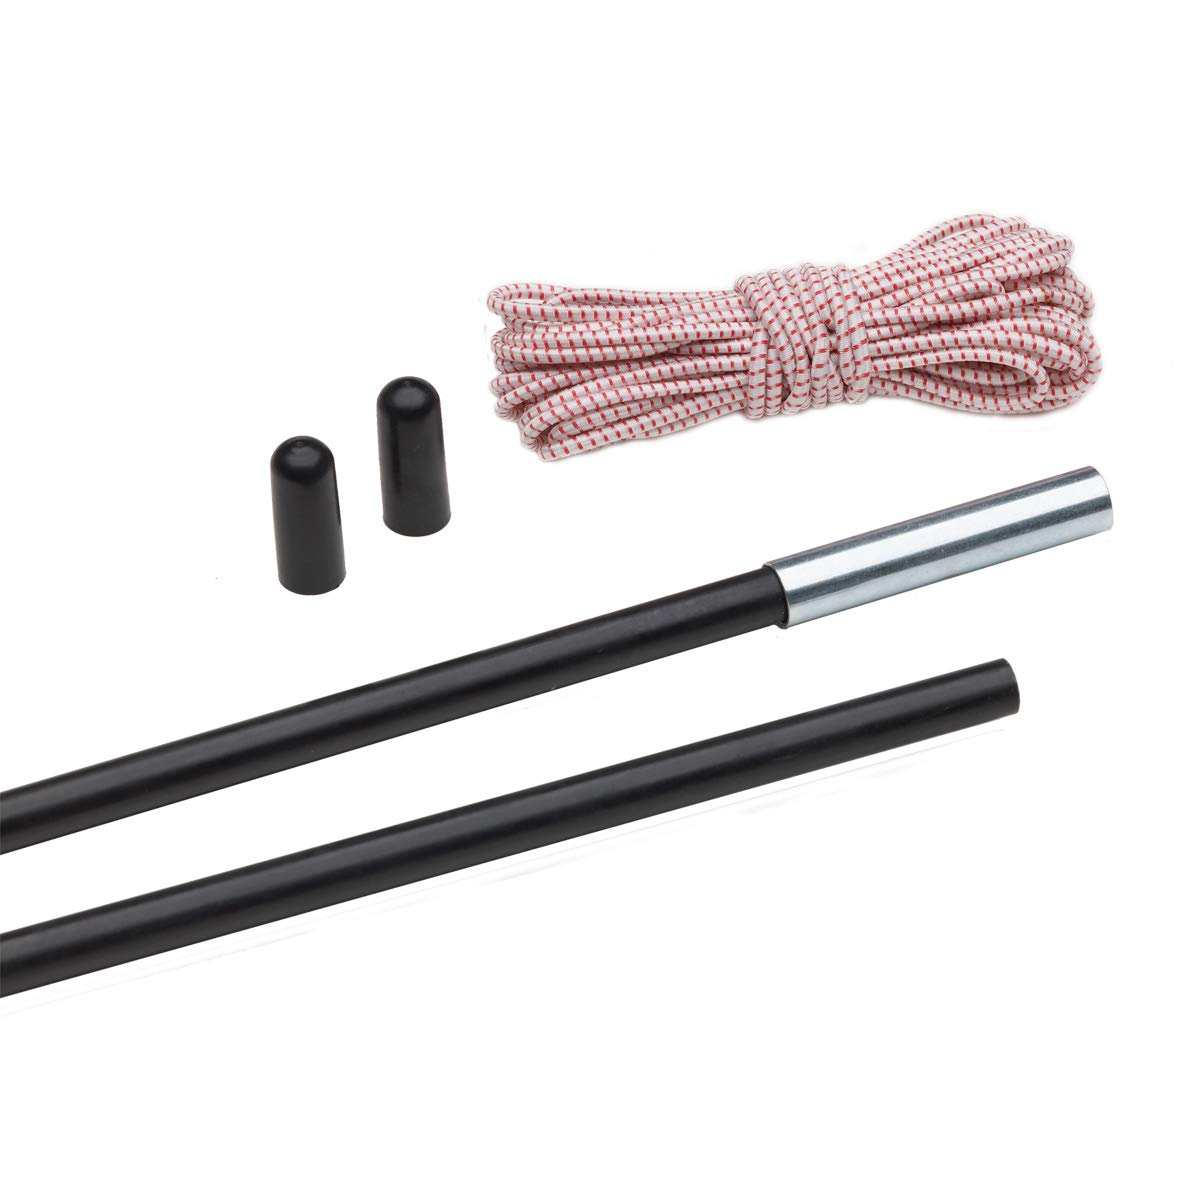 Eureka! Fiberglass Shock Cord Pole Repair and Replacement Kit